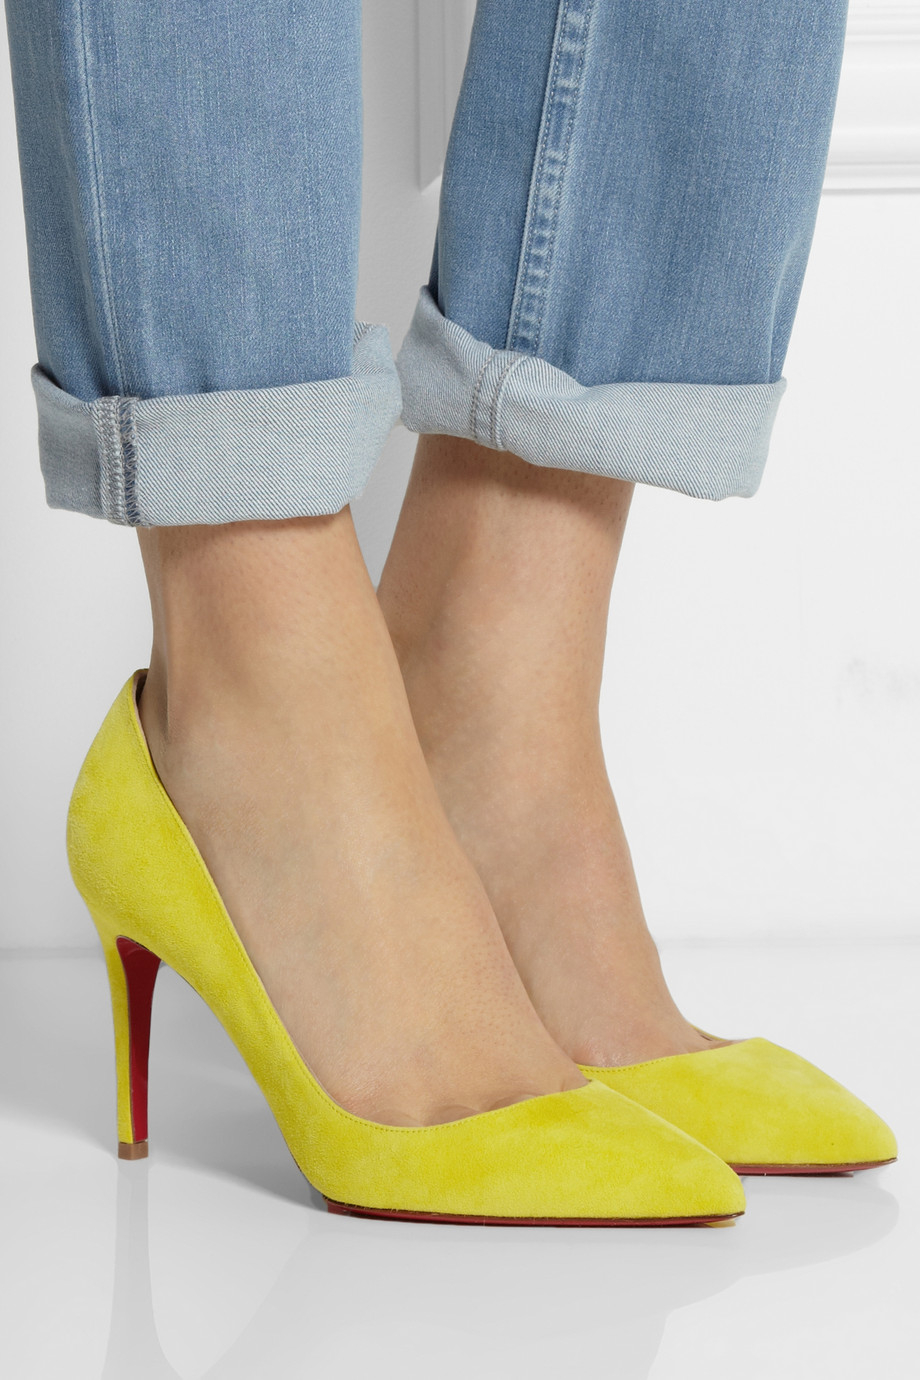 11f61adfb0b Lyst - Christian Louboutin Pigalle 85 Suede Pumps in Yellow